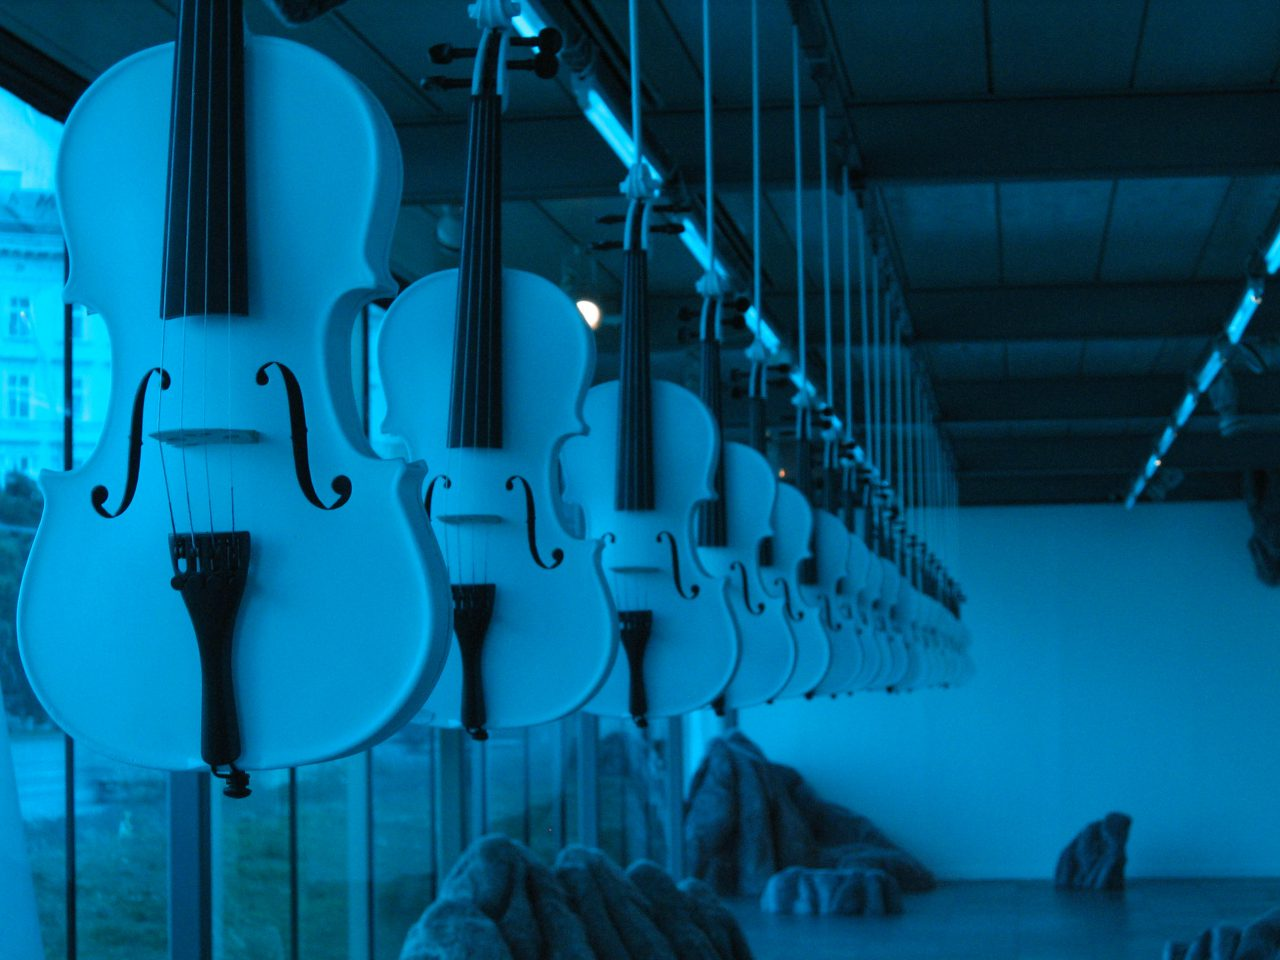 'Islamic Violins' Sculptural Installation of 30 hand-sculpturally treated violins